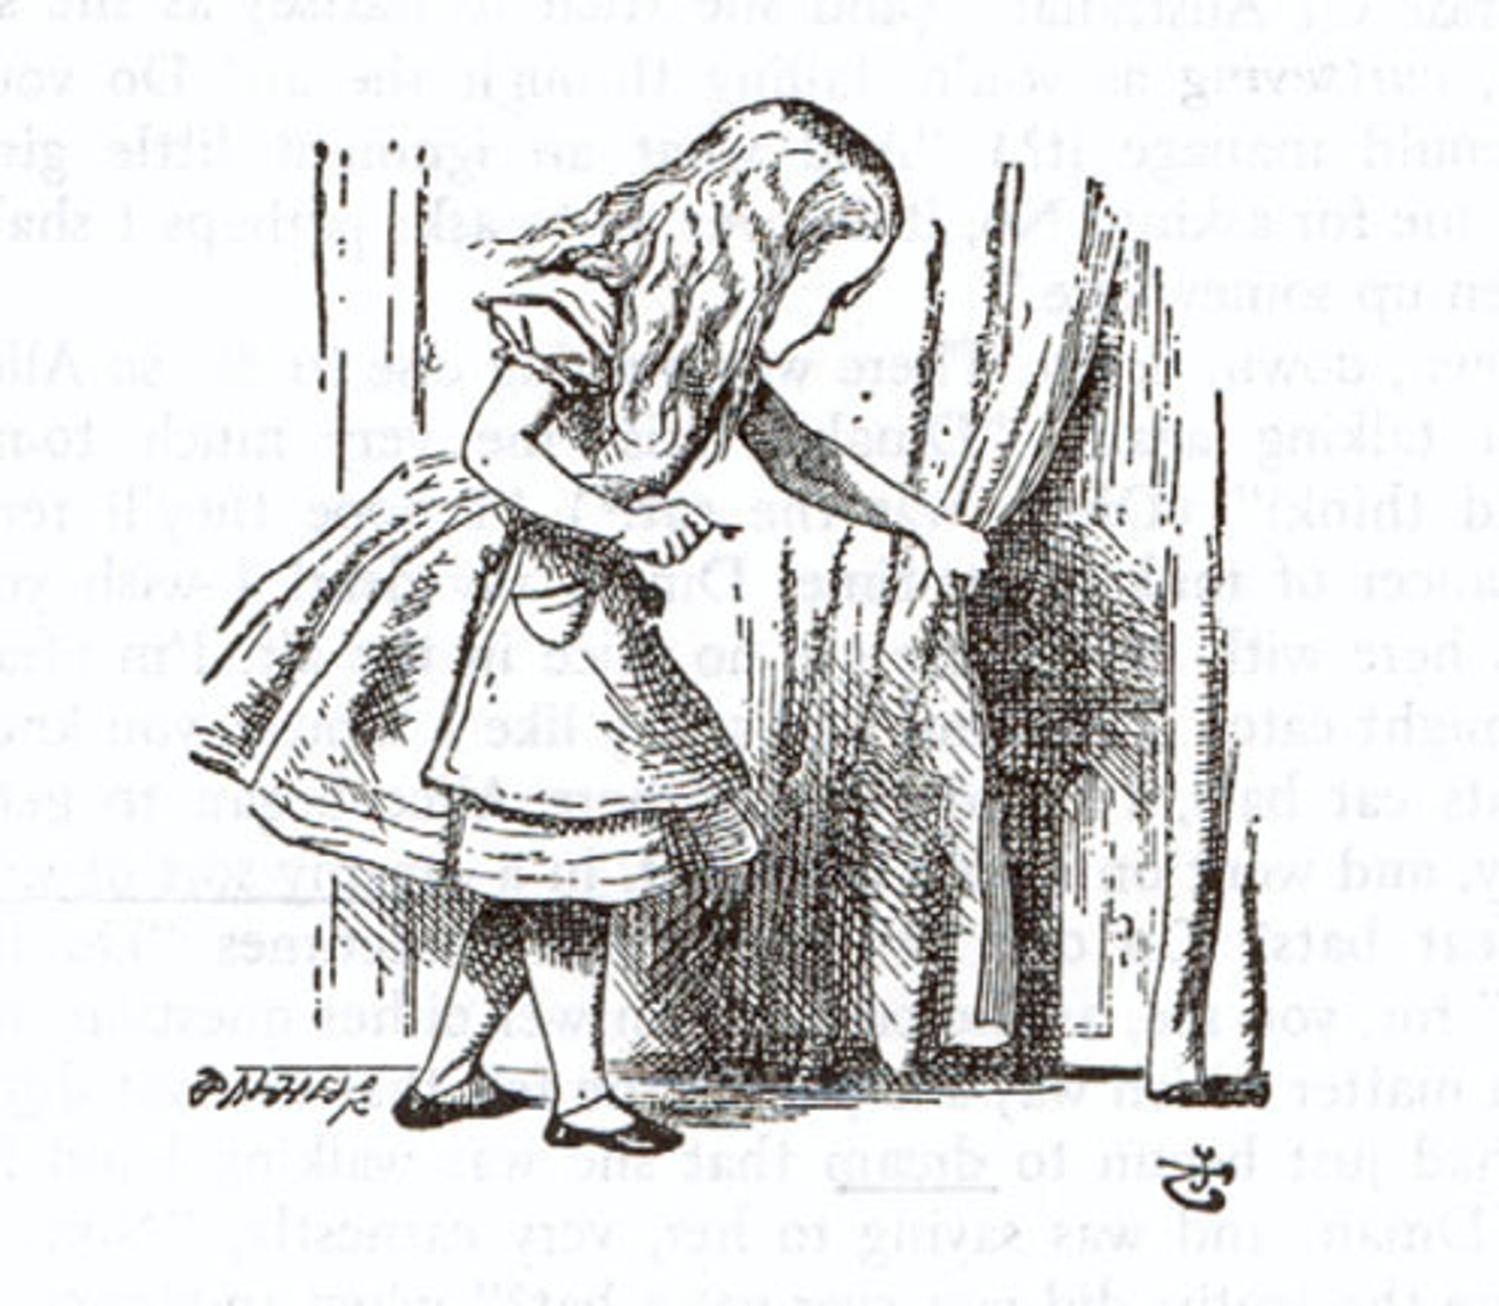 what really happened to alice in wonderland Alice was beginning to get very tired of sitting by her sister on the bank, and of having nothing to do: once or twice she had peeped into the book her sister was reading, but it had no pictures or conversations in it, `and what is the use of a book,' thought alice `without pictures or conversation.